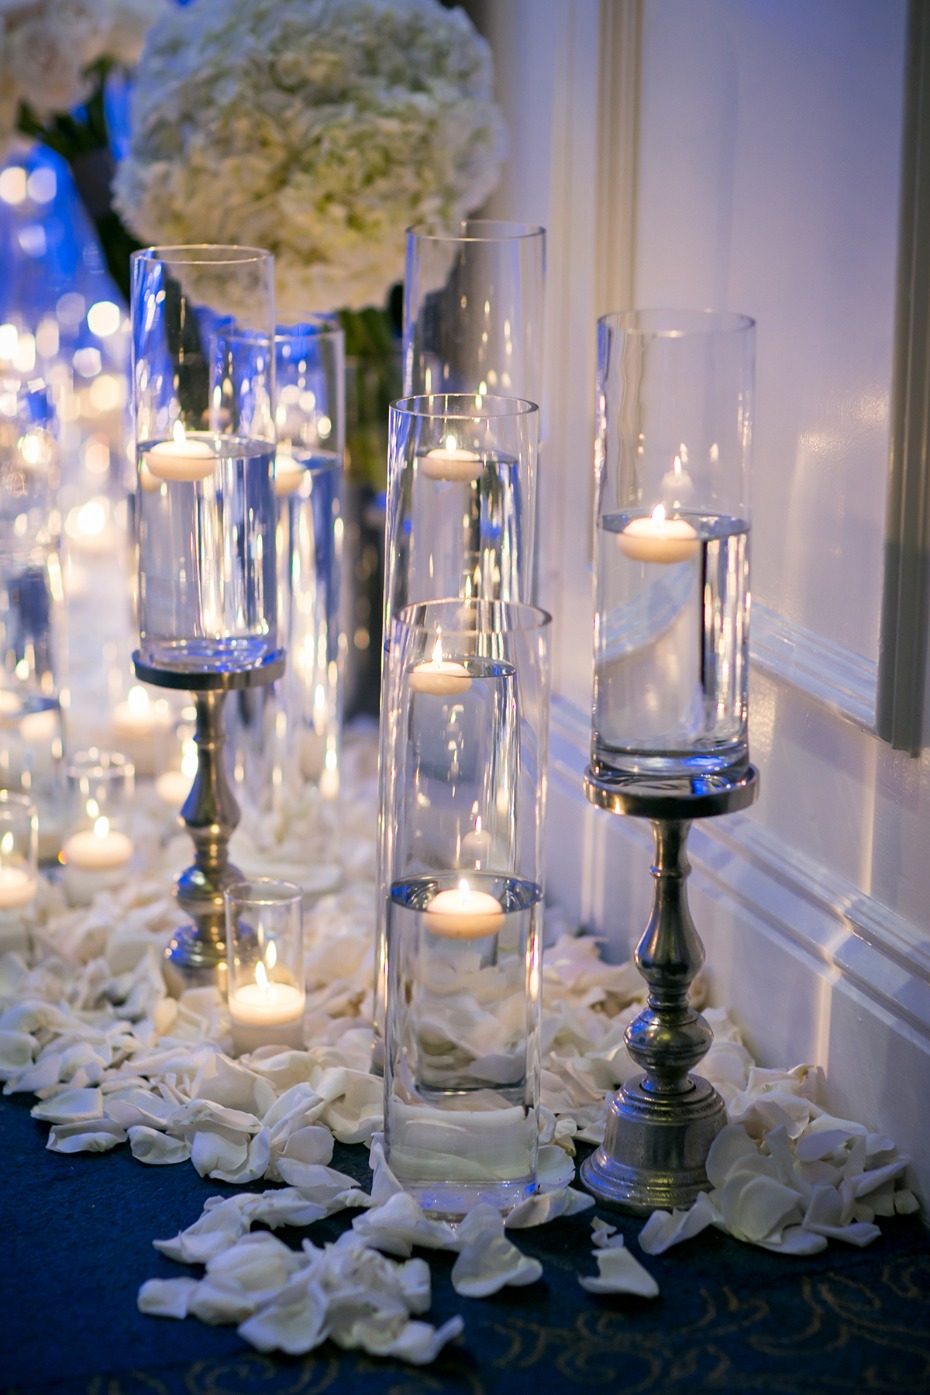 setting the mood with floating candles and oodles of flower petals